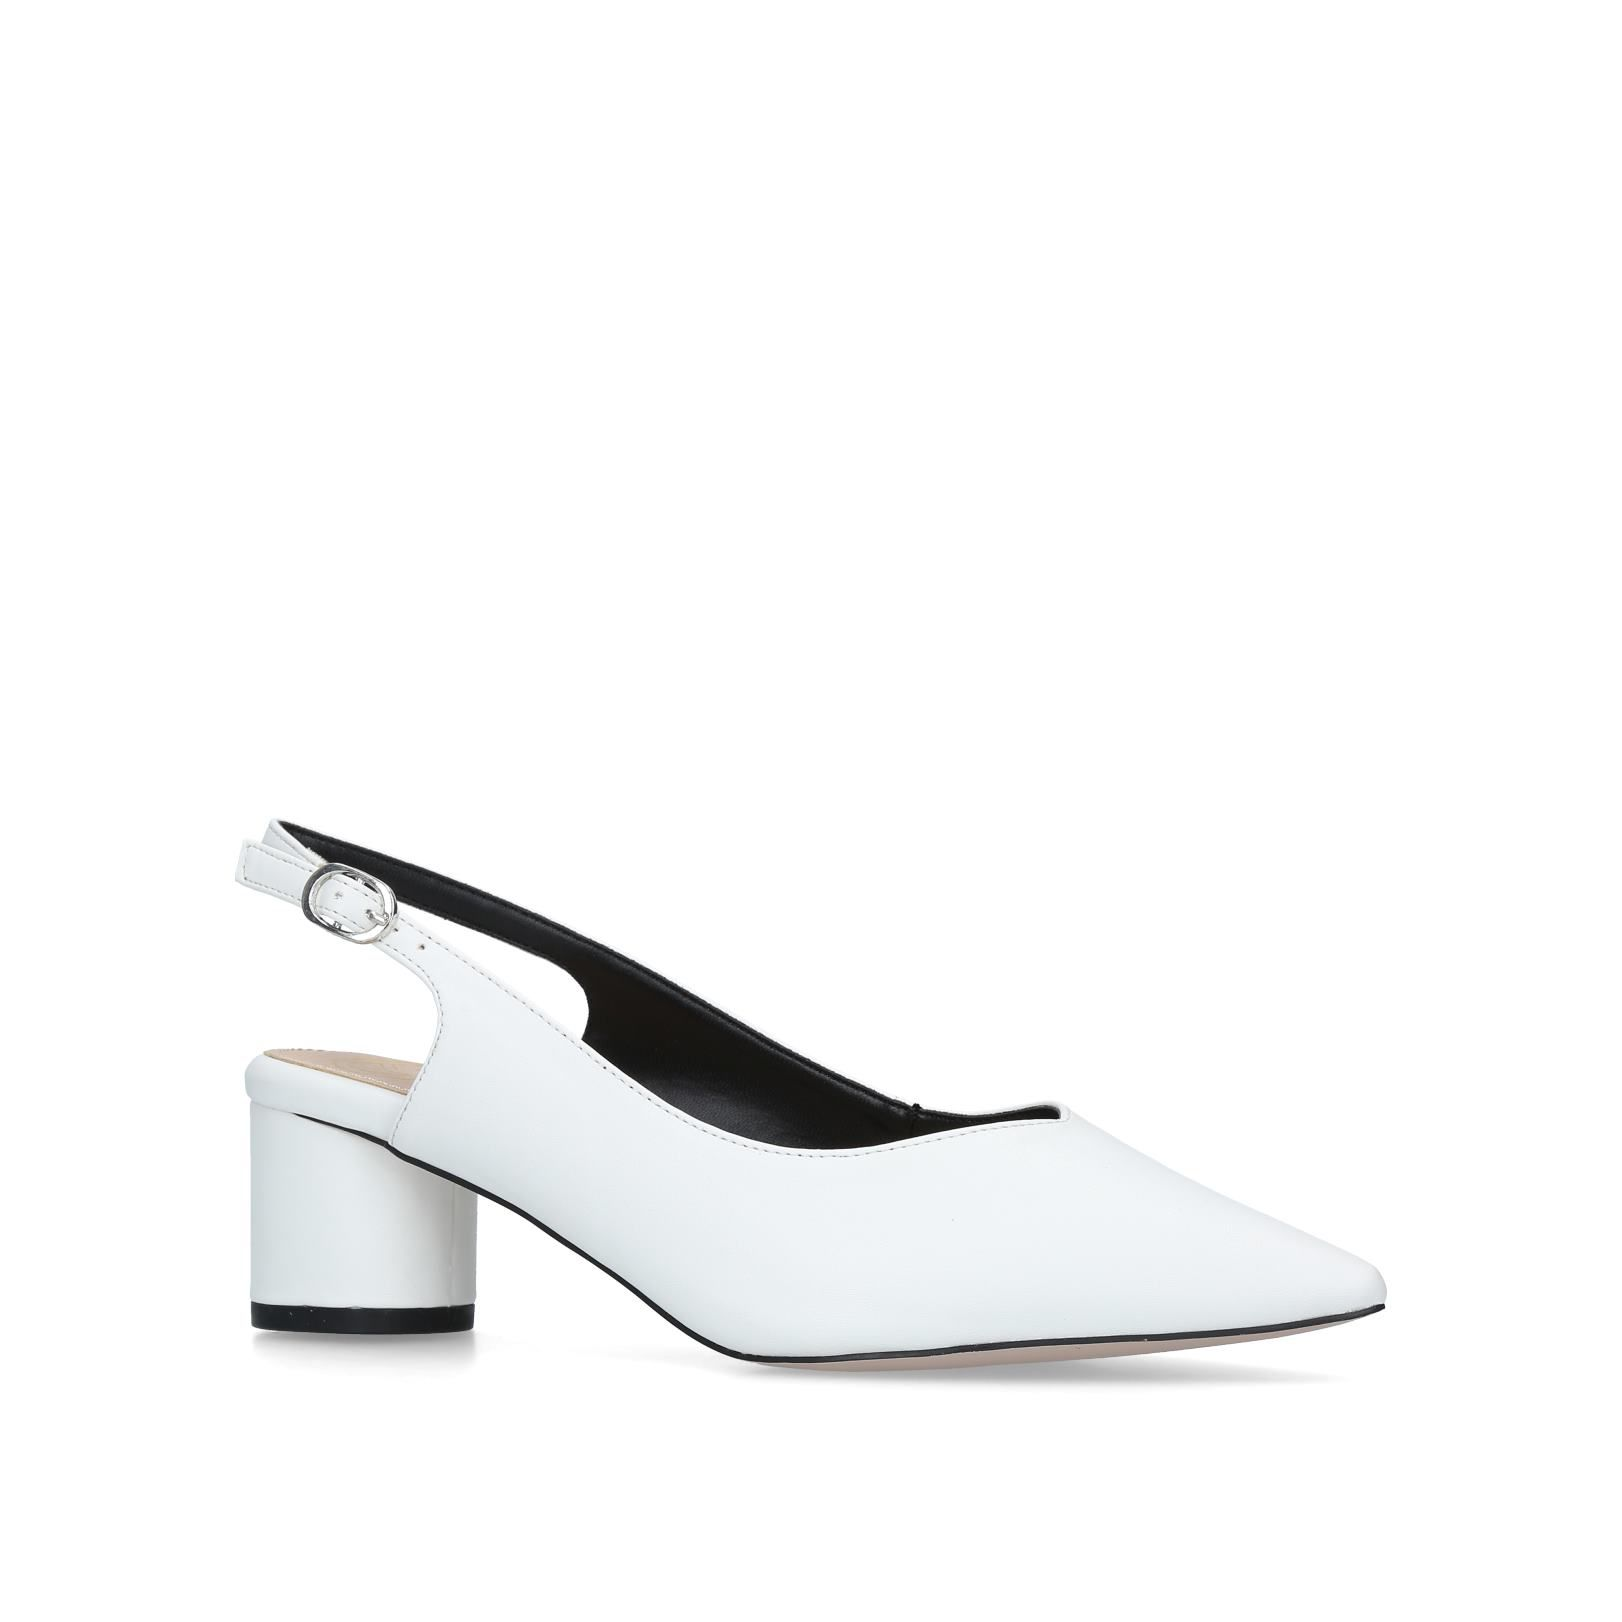 KG Cecily Courts, White